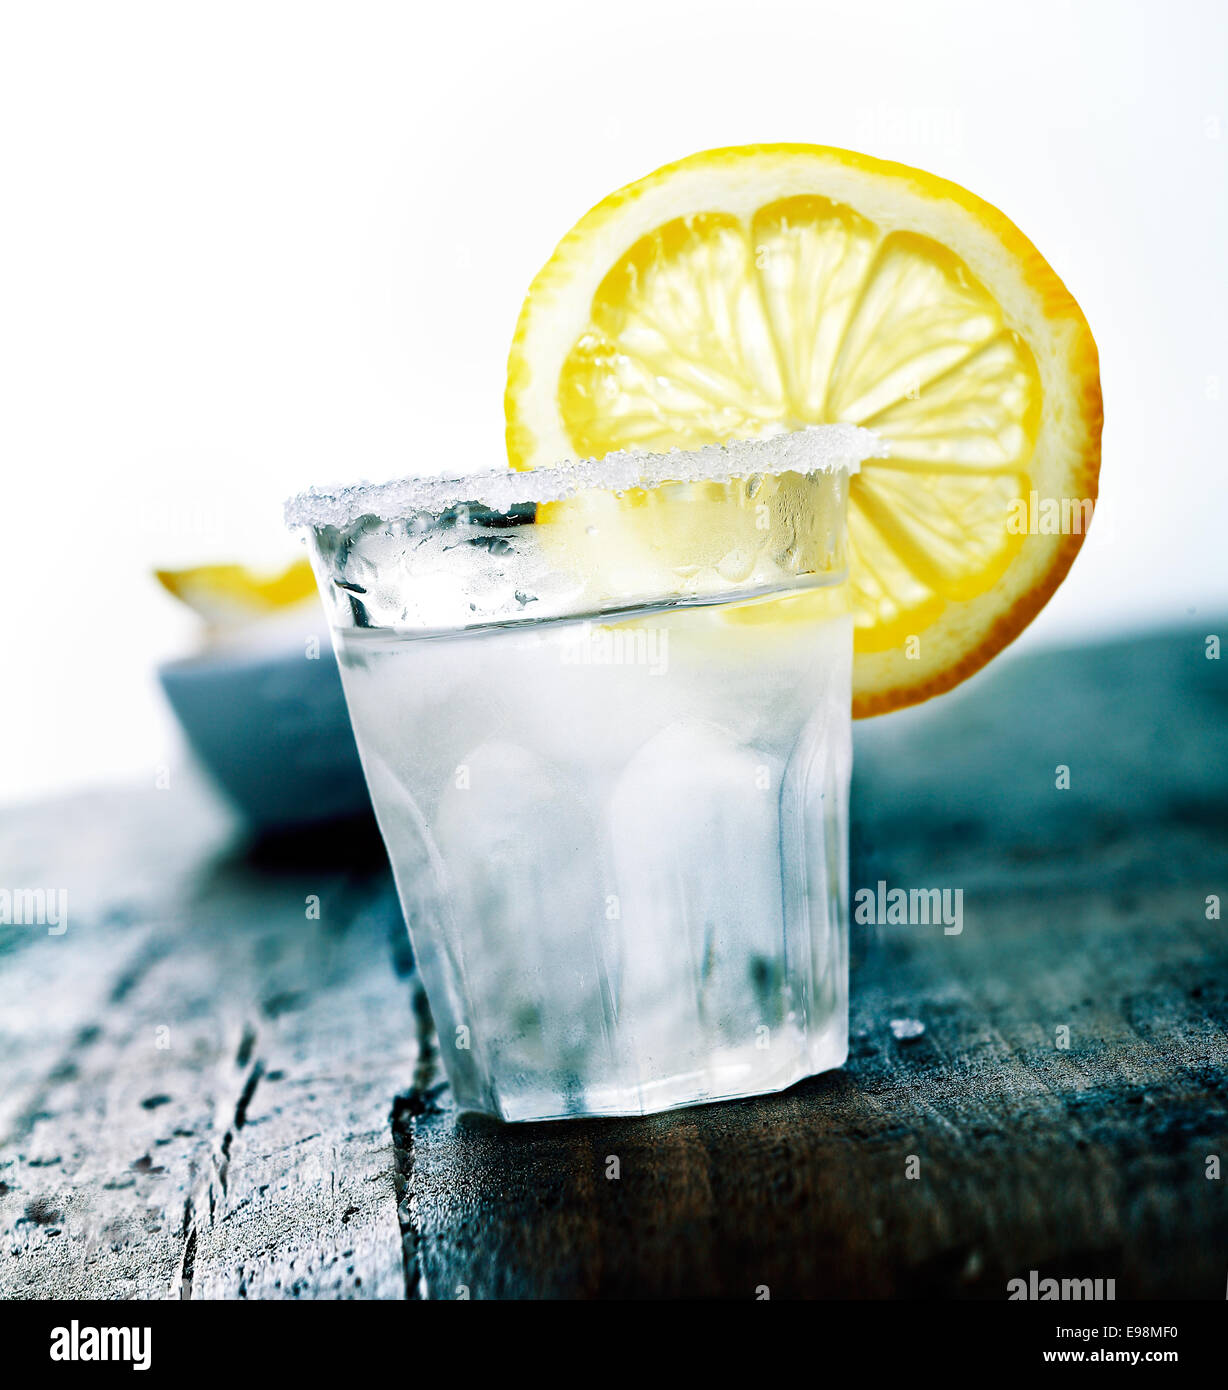 Cooled Tequila with a fresh Citron and salt on a wooden background - Stock Image